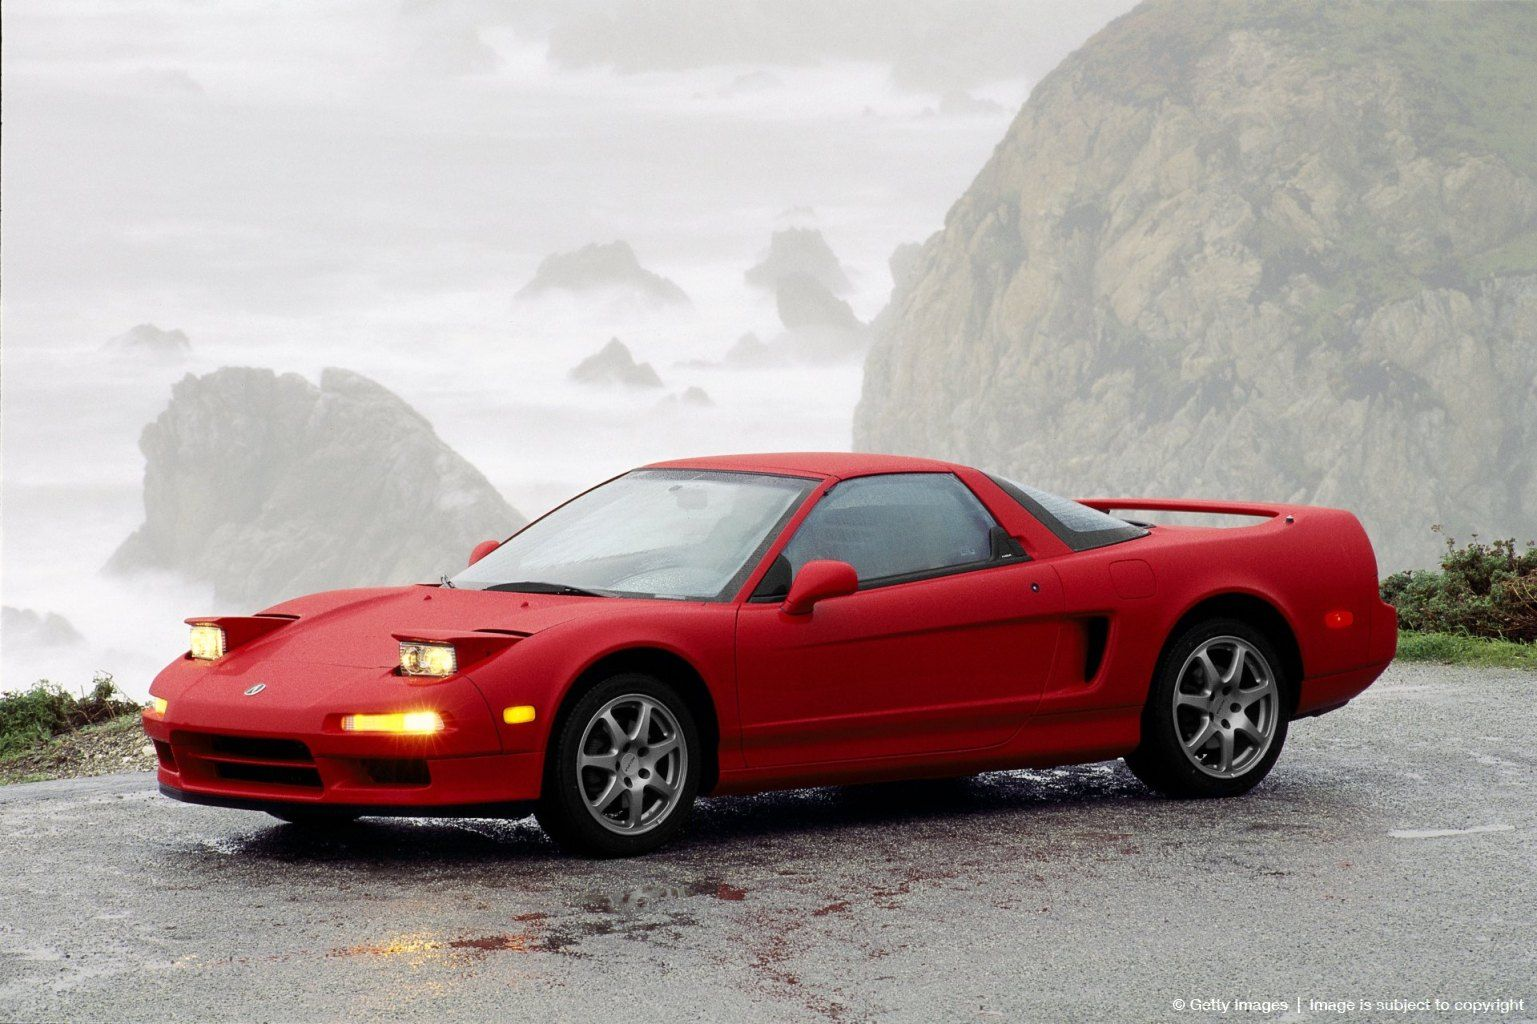 1990 Red Acura NSX Japanese sports cars, Nsx, Small